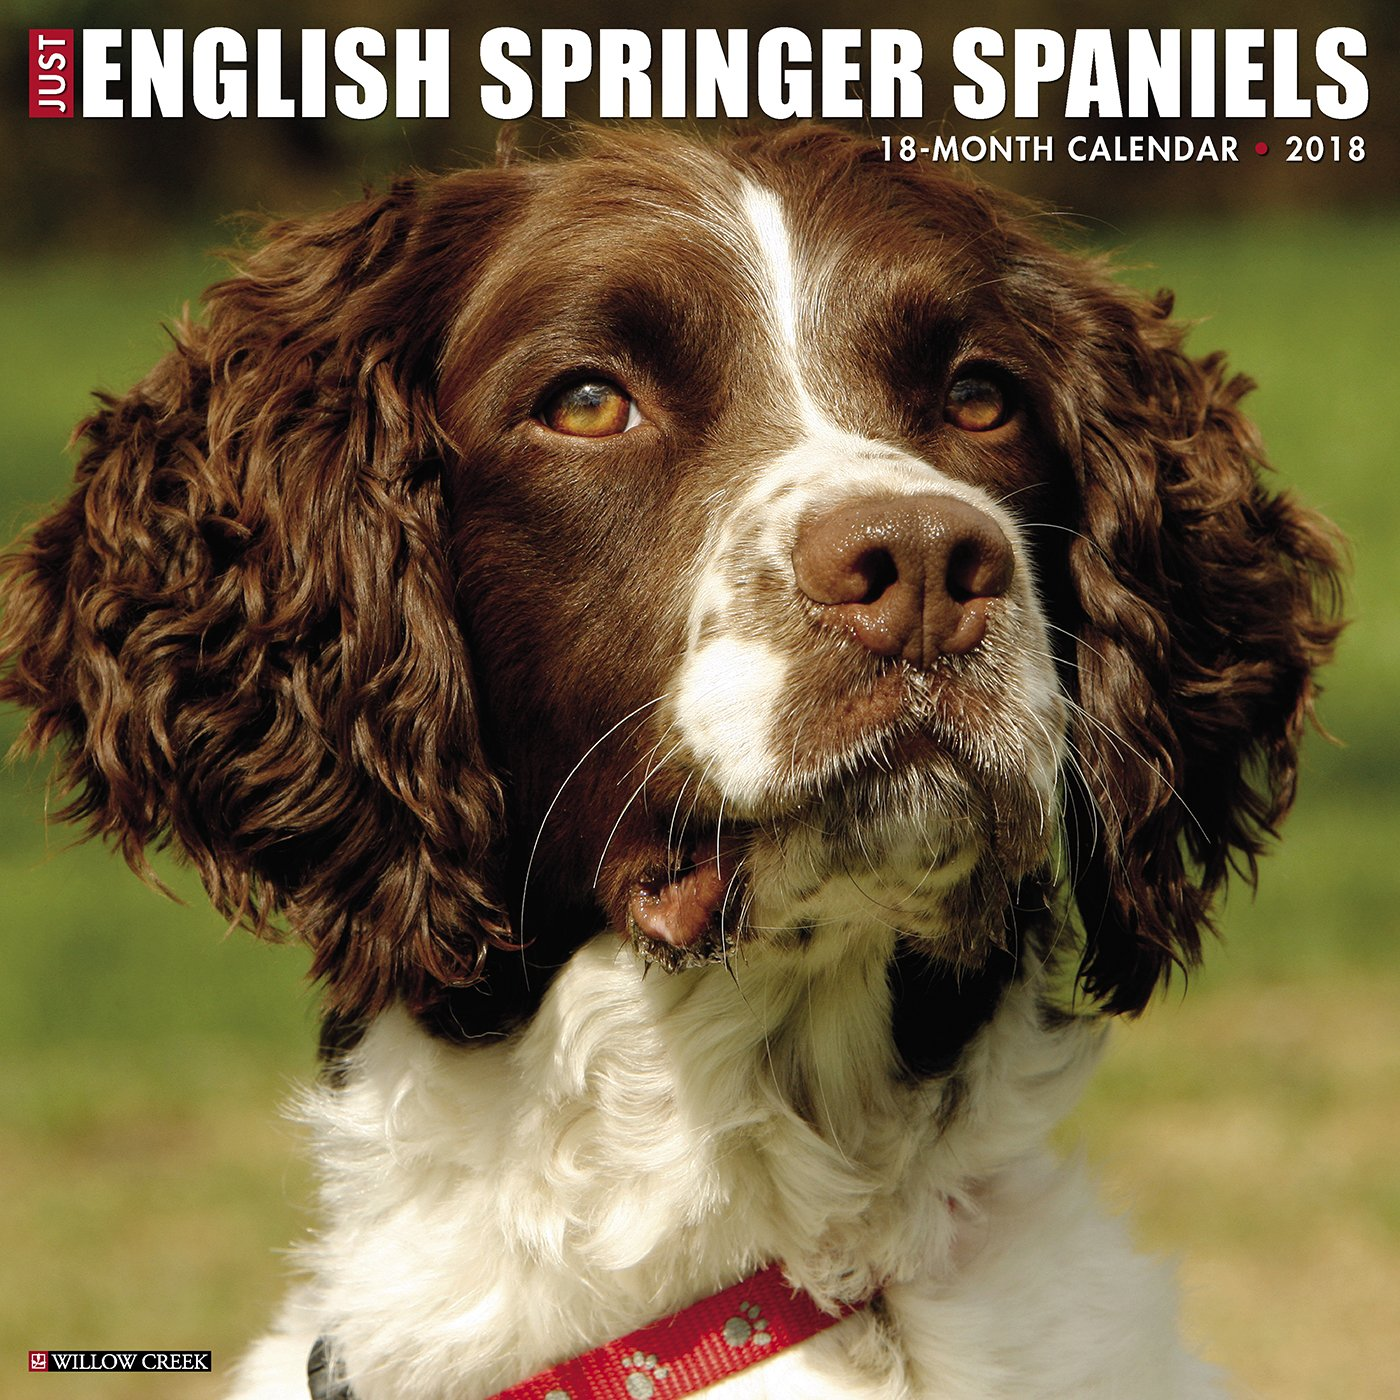 Just English Springer Spaniels 2018 Calendar